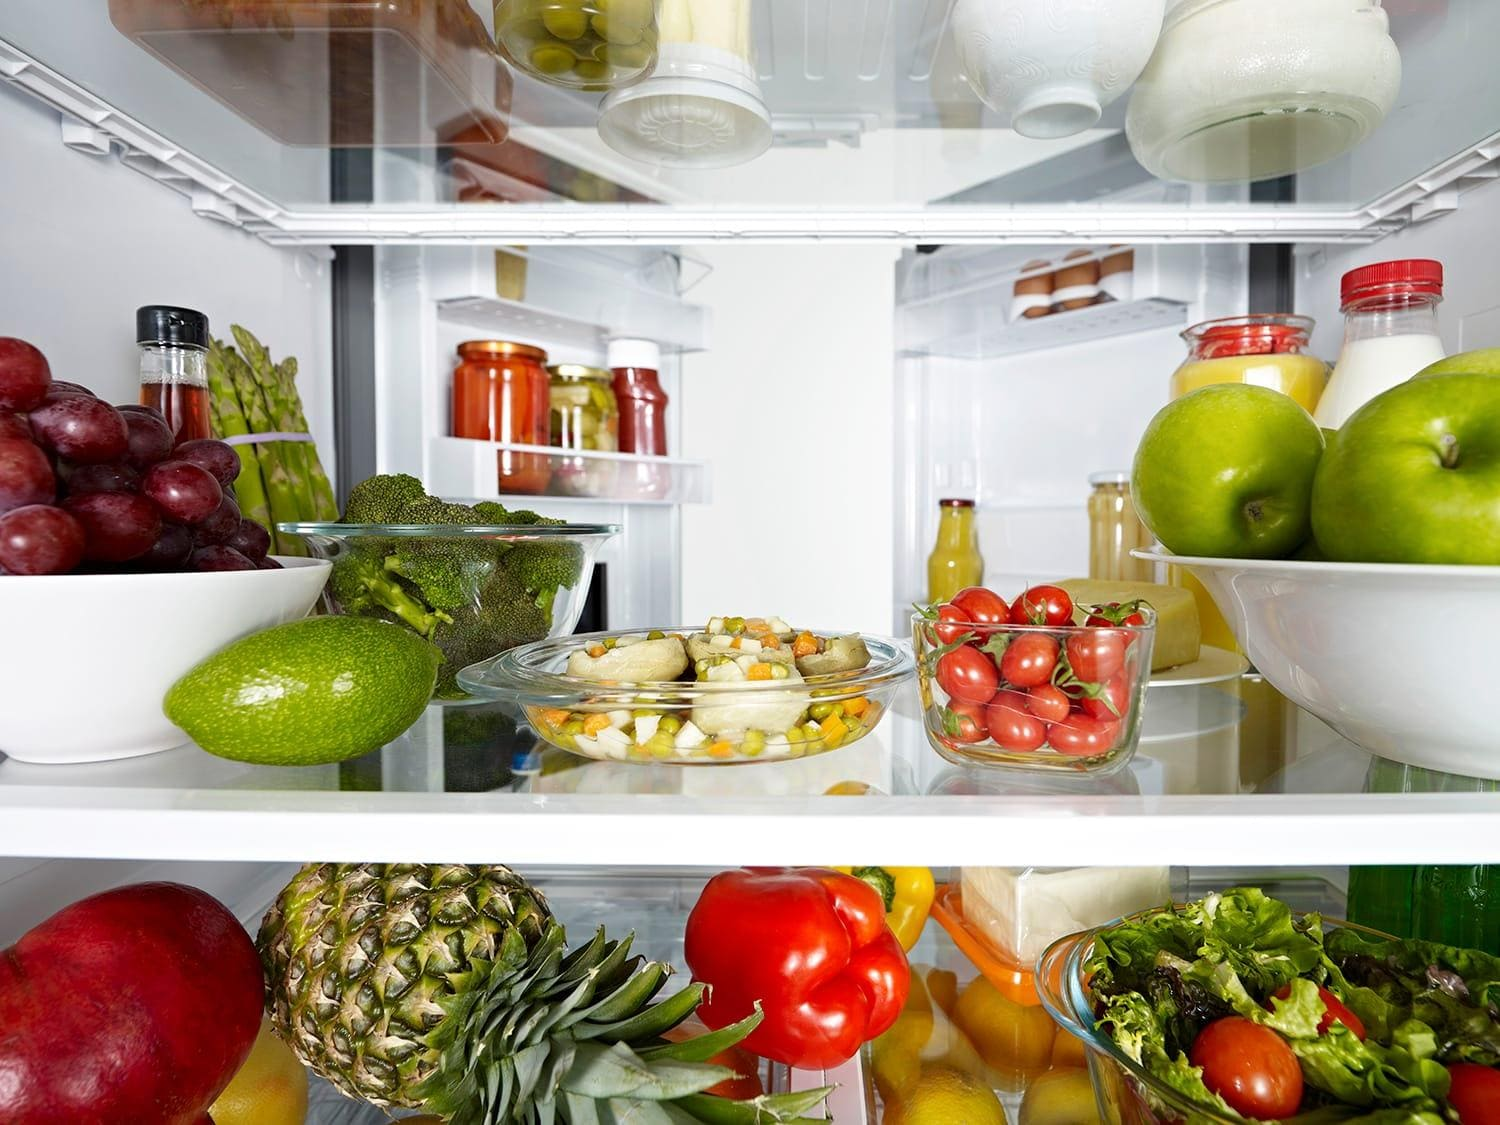 View from inside refrigerator